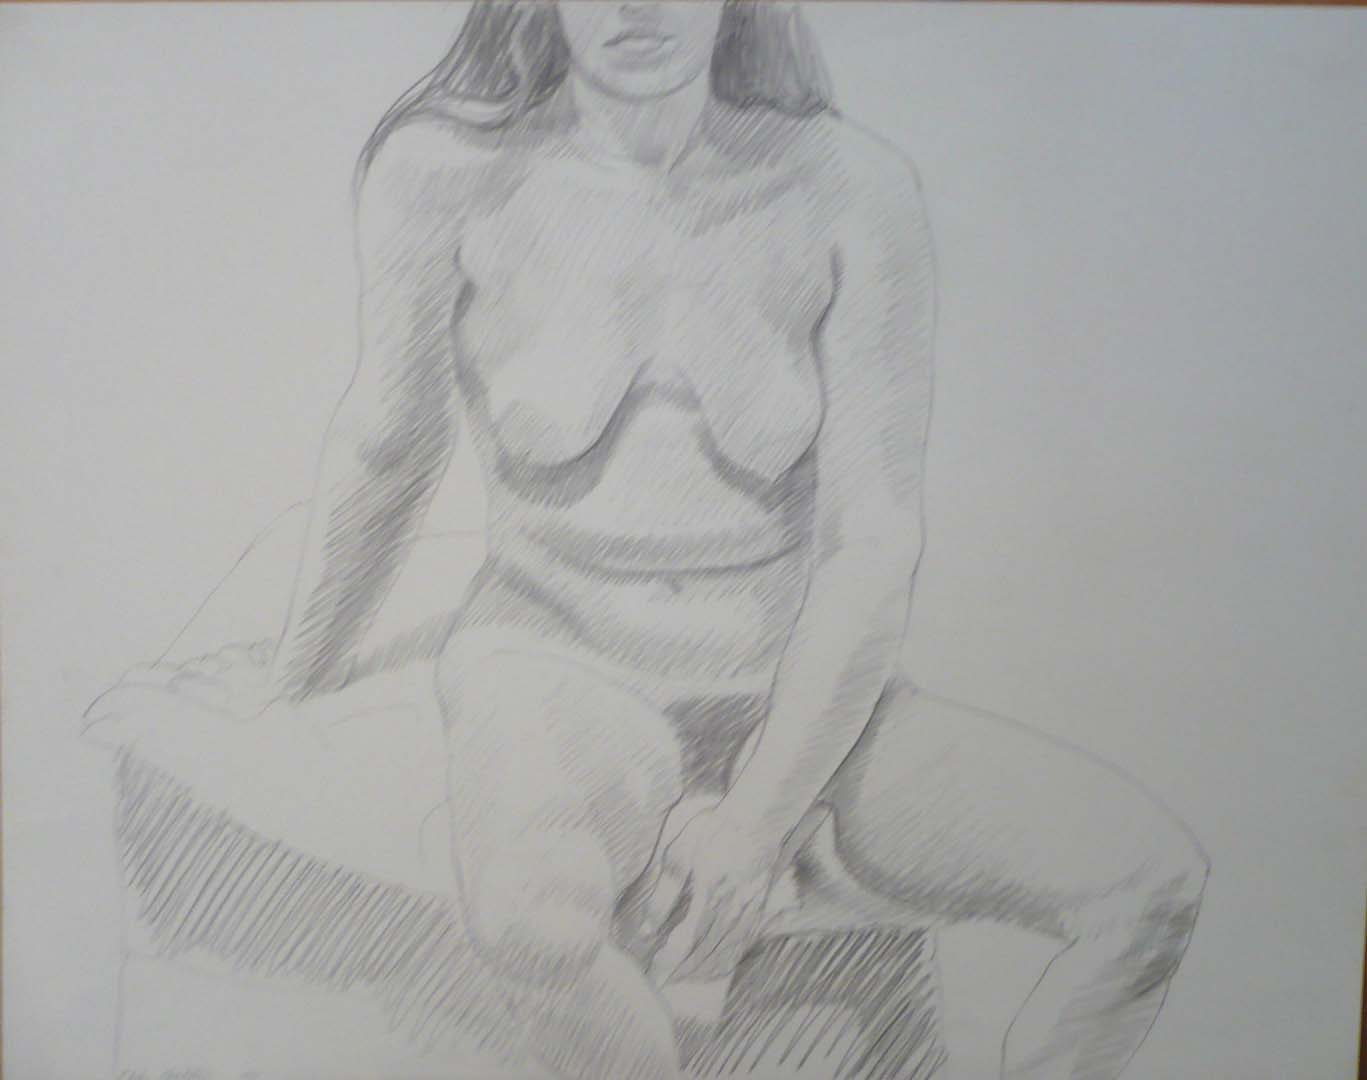 1972 Seated Model Pencil 18.875 x 24